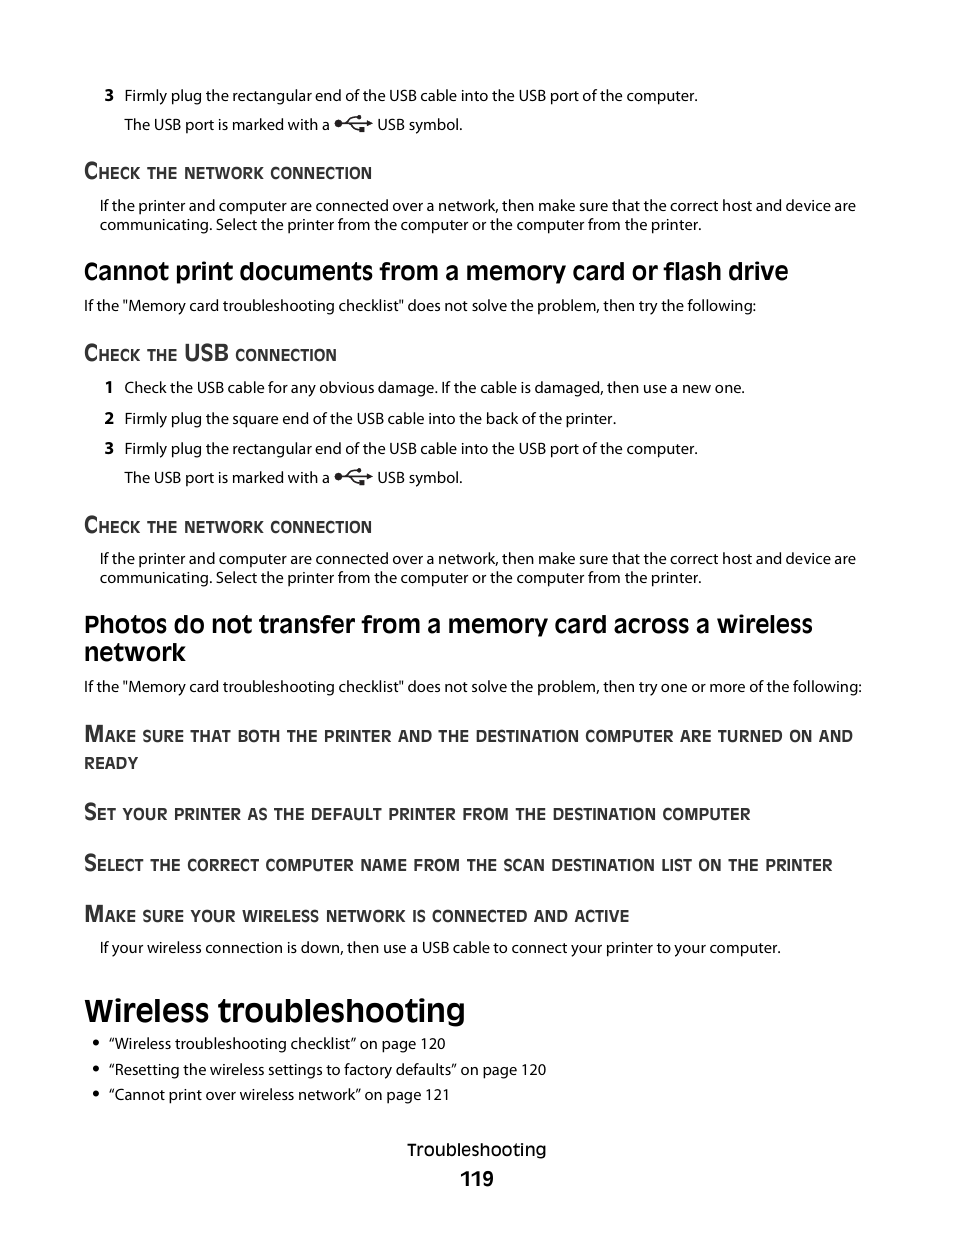 Wireless troubleshooting | Dell V515w All In One Wireless Inkjet Printer  User Manual | Page 119 / 141